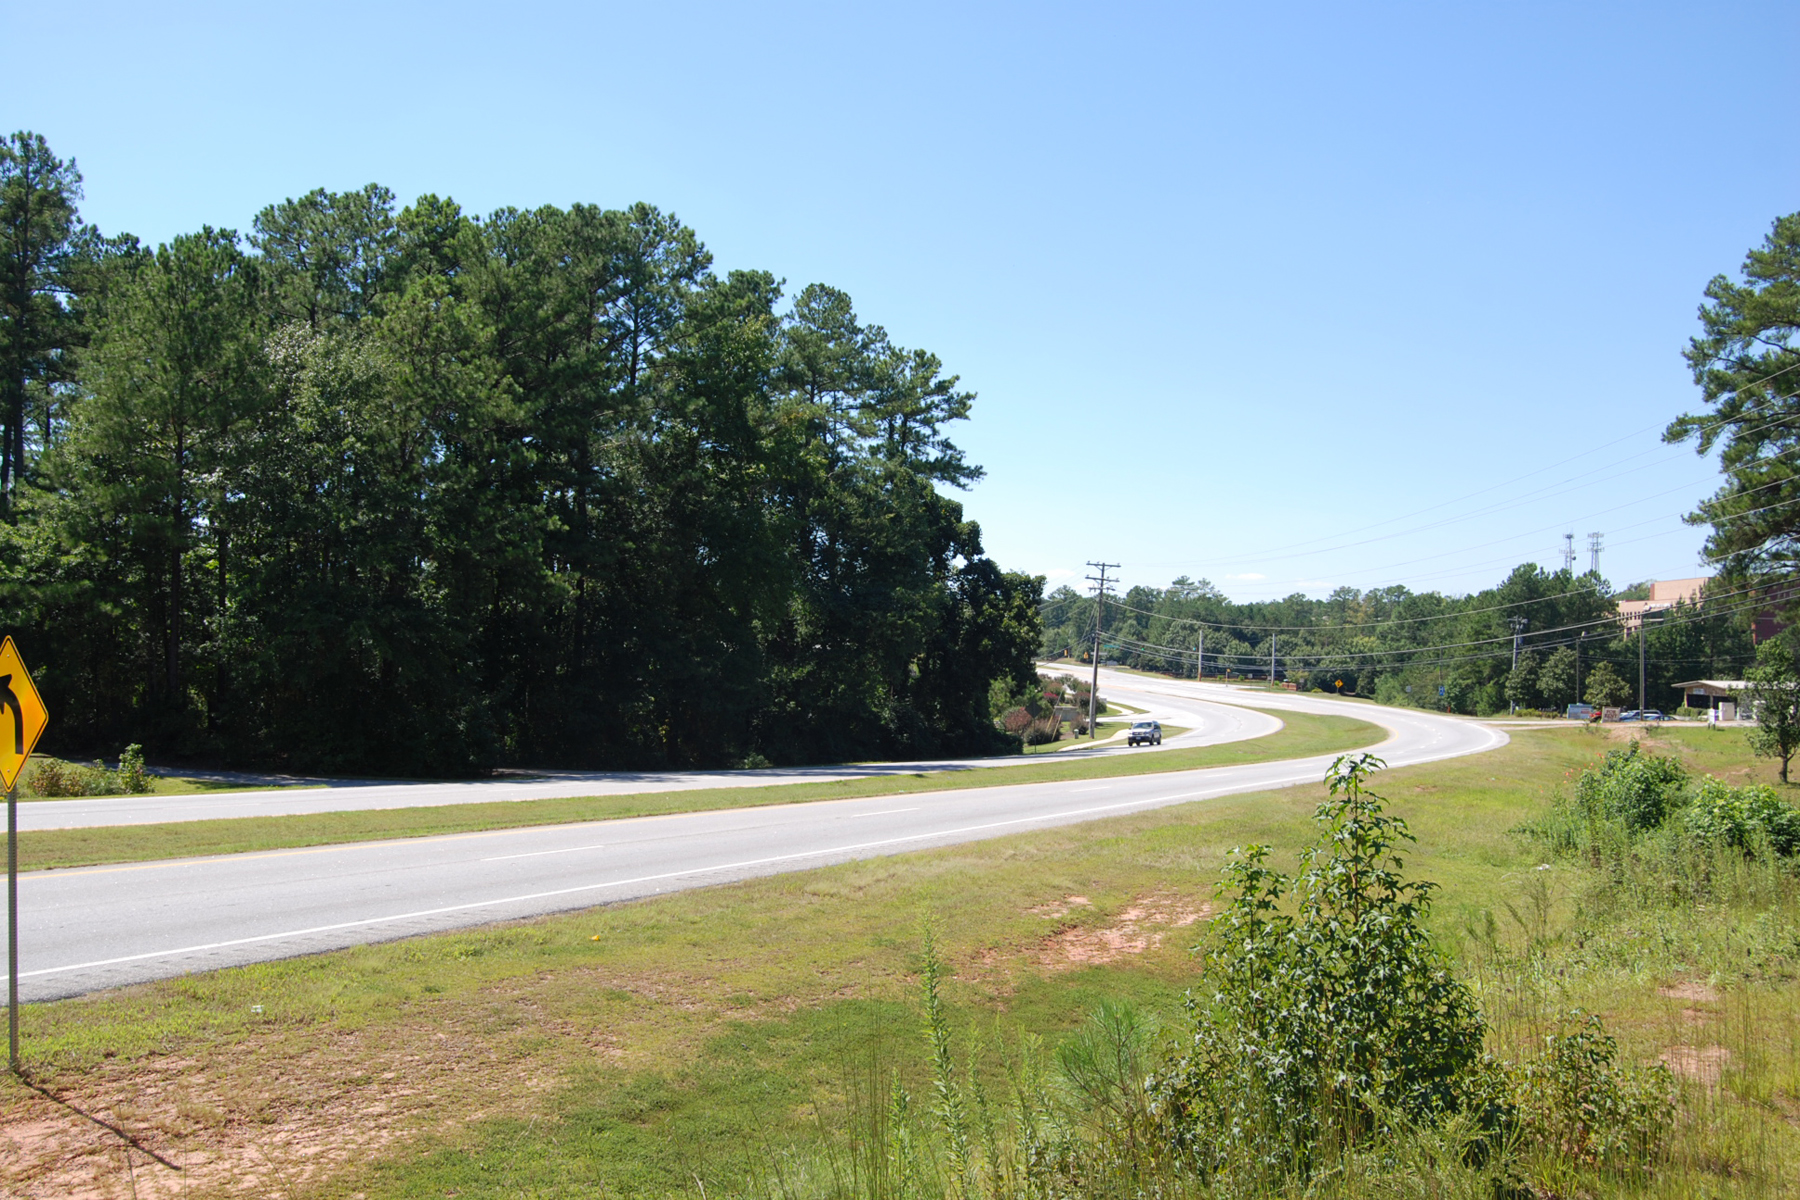 Земля для того Продажа на Prime Location - 8+/- Acres Across From Piedmont Fayette Hospital 1218 Highway 54 W, Fayetteville, Джорджия 30215 Соединенные Штаты